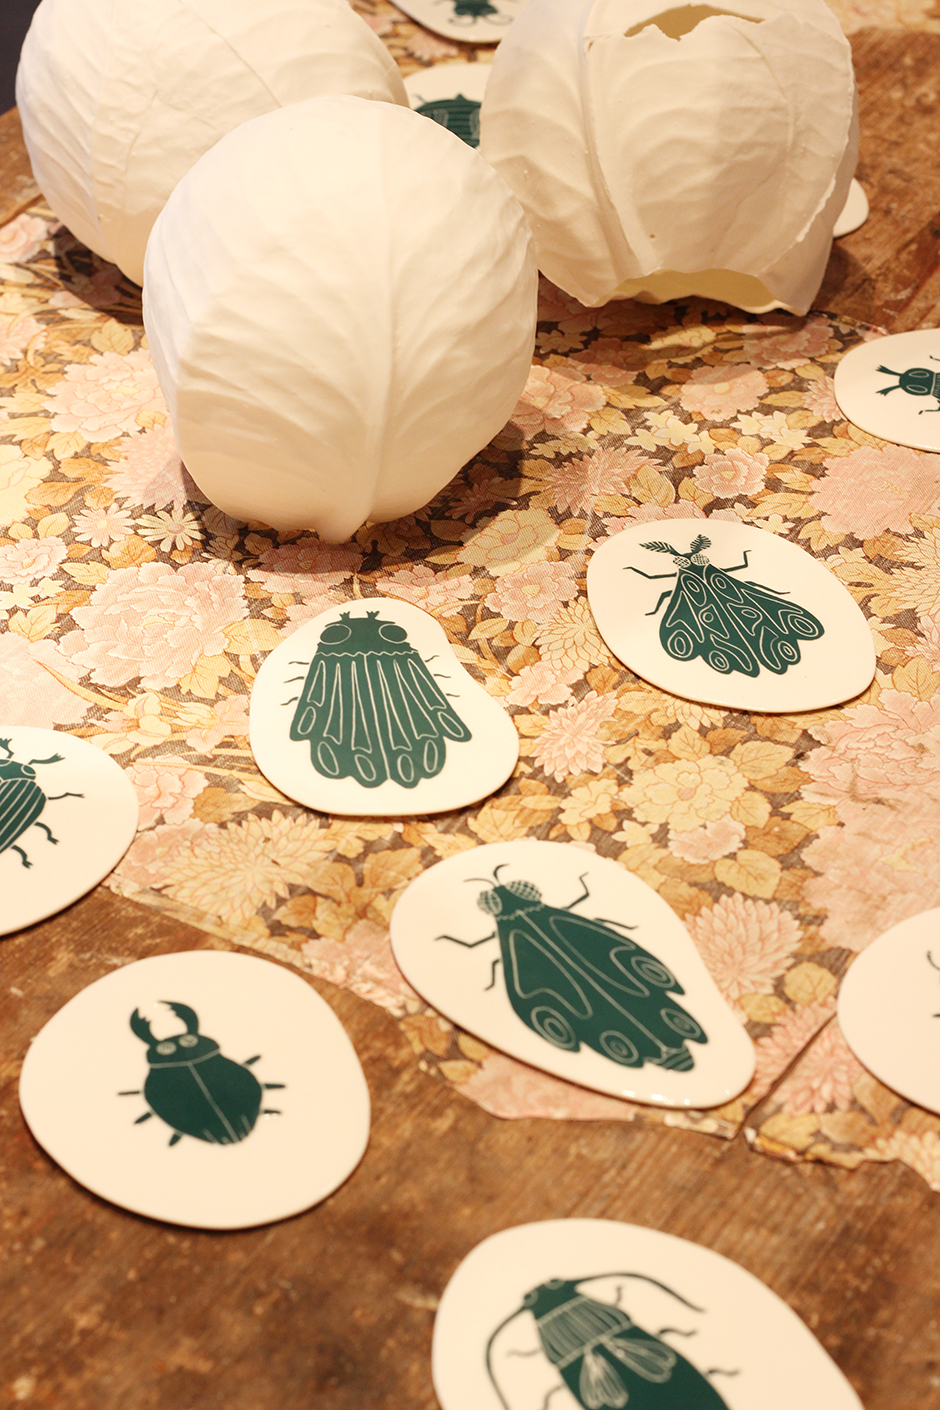 Insectes-gloutons-et-choux-nomades-à-table-9 Charlotte Heurtier 2015.jpg